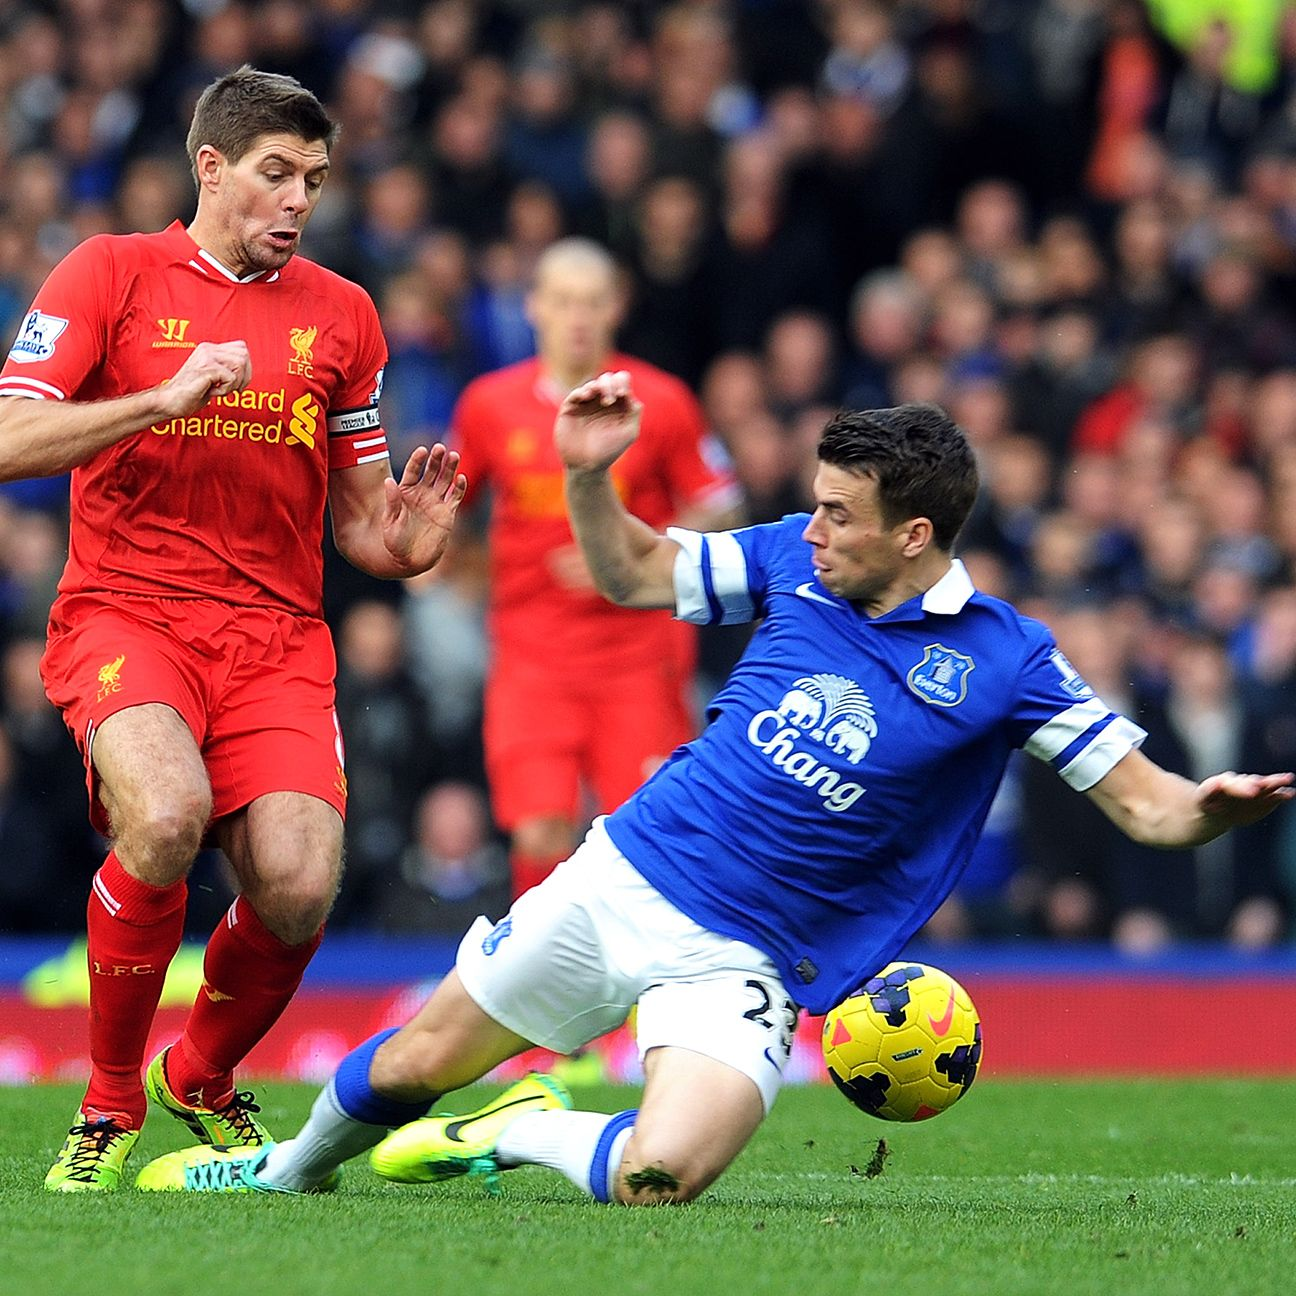 Things are always turn feisty when Steven Gerrard's Liverpool and Seamus Coleman's Everton do battle.